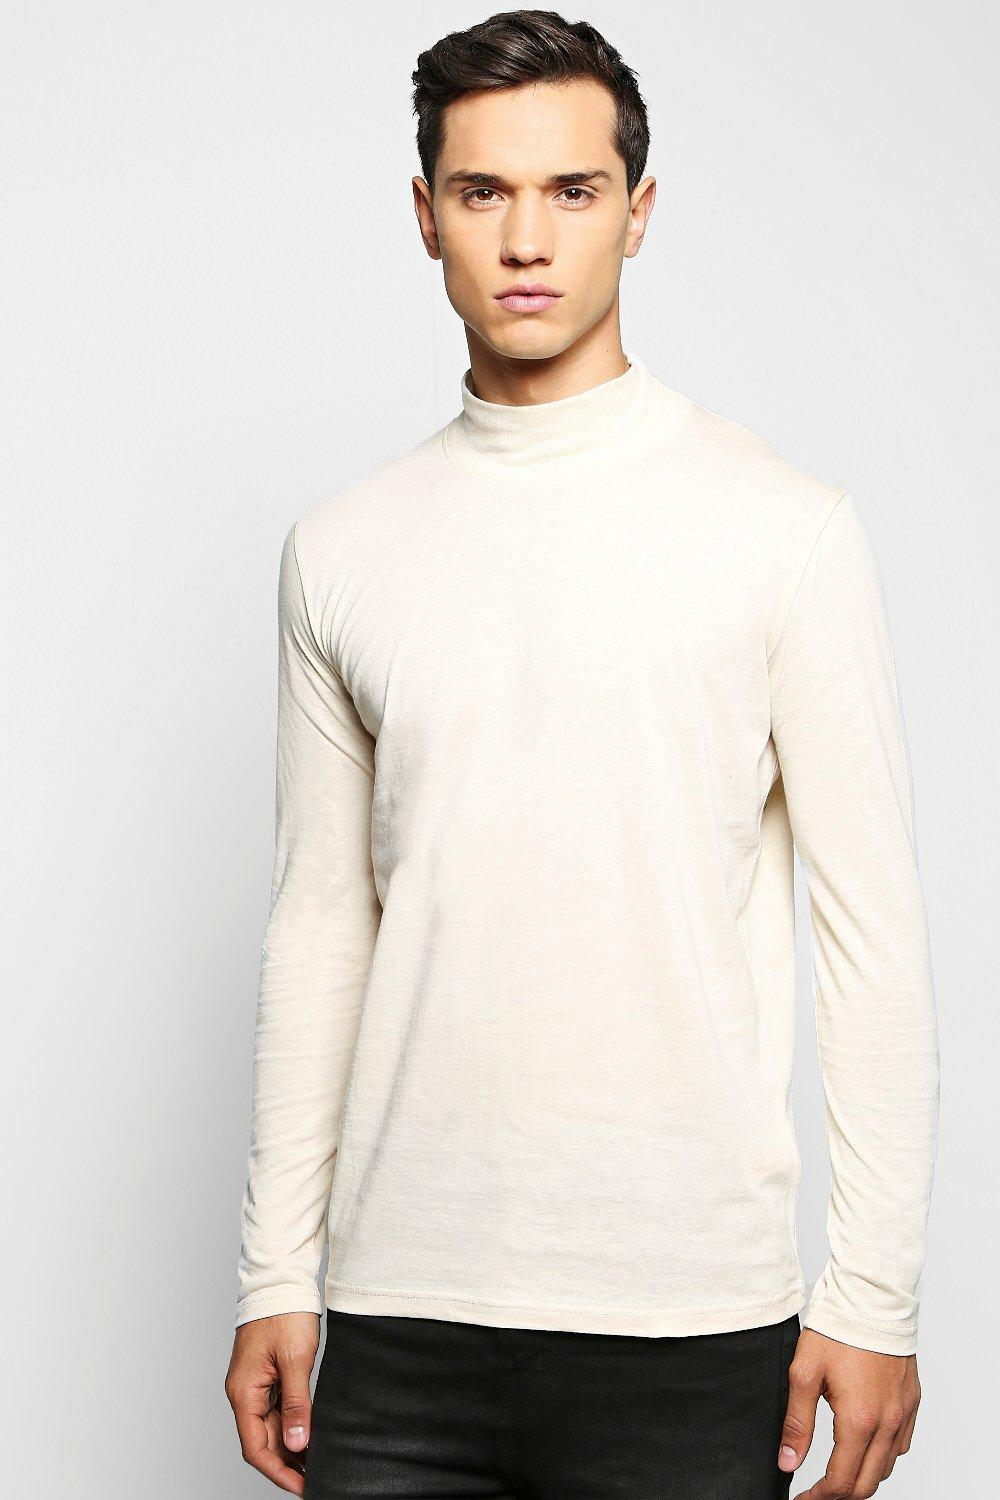 Boohoo mens long sleeve high neck t shirt for High neck tee shirts